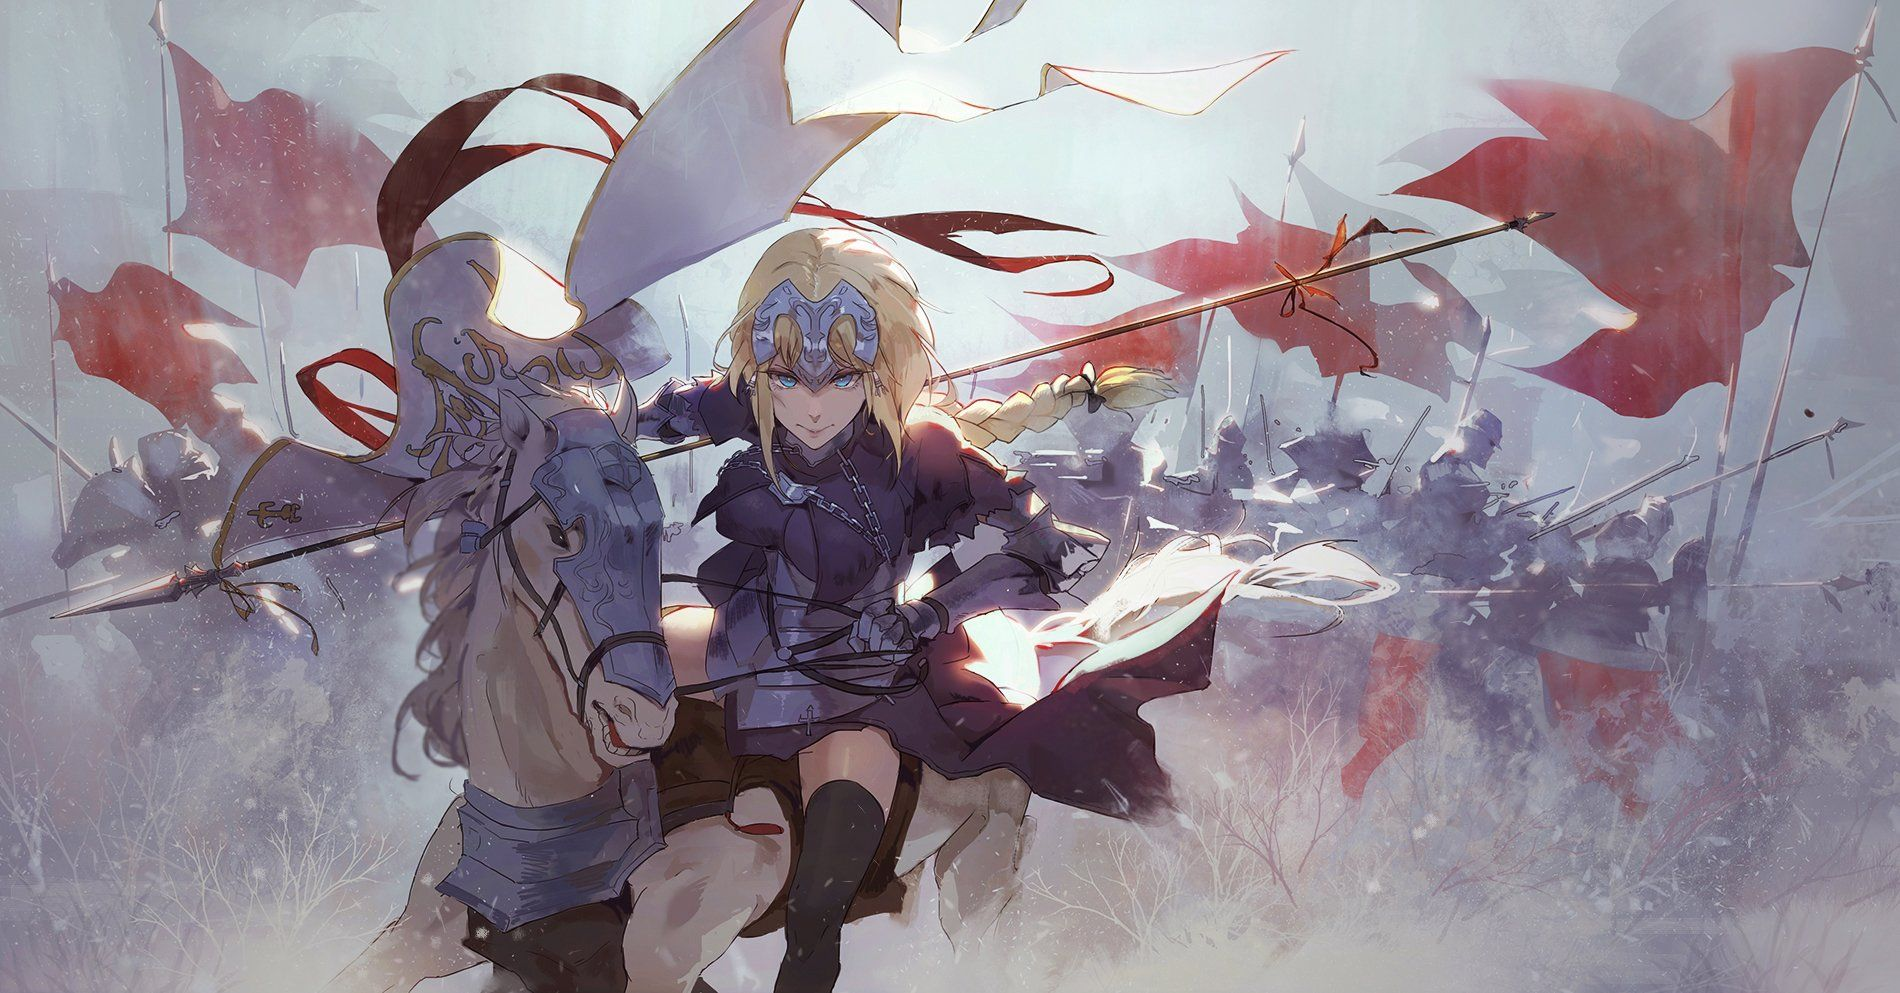 Fate Apocrypha Wallpapers Top Free Fate Apocrypha Backgrounds